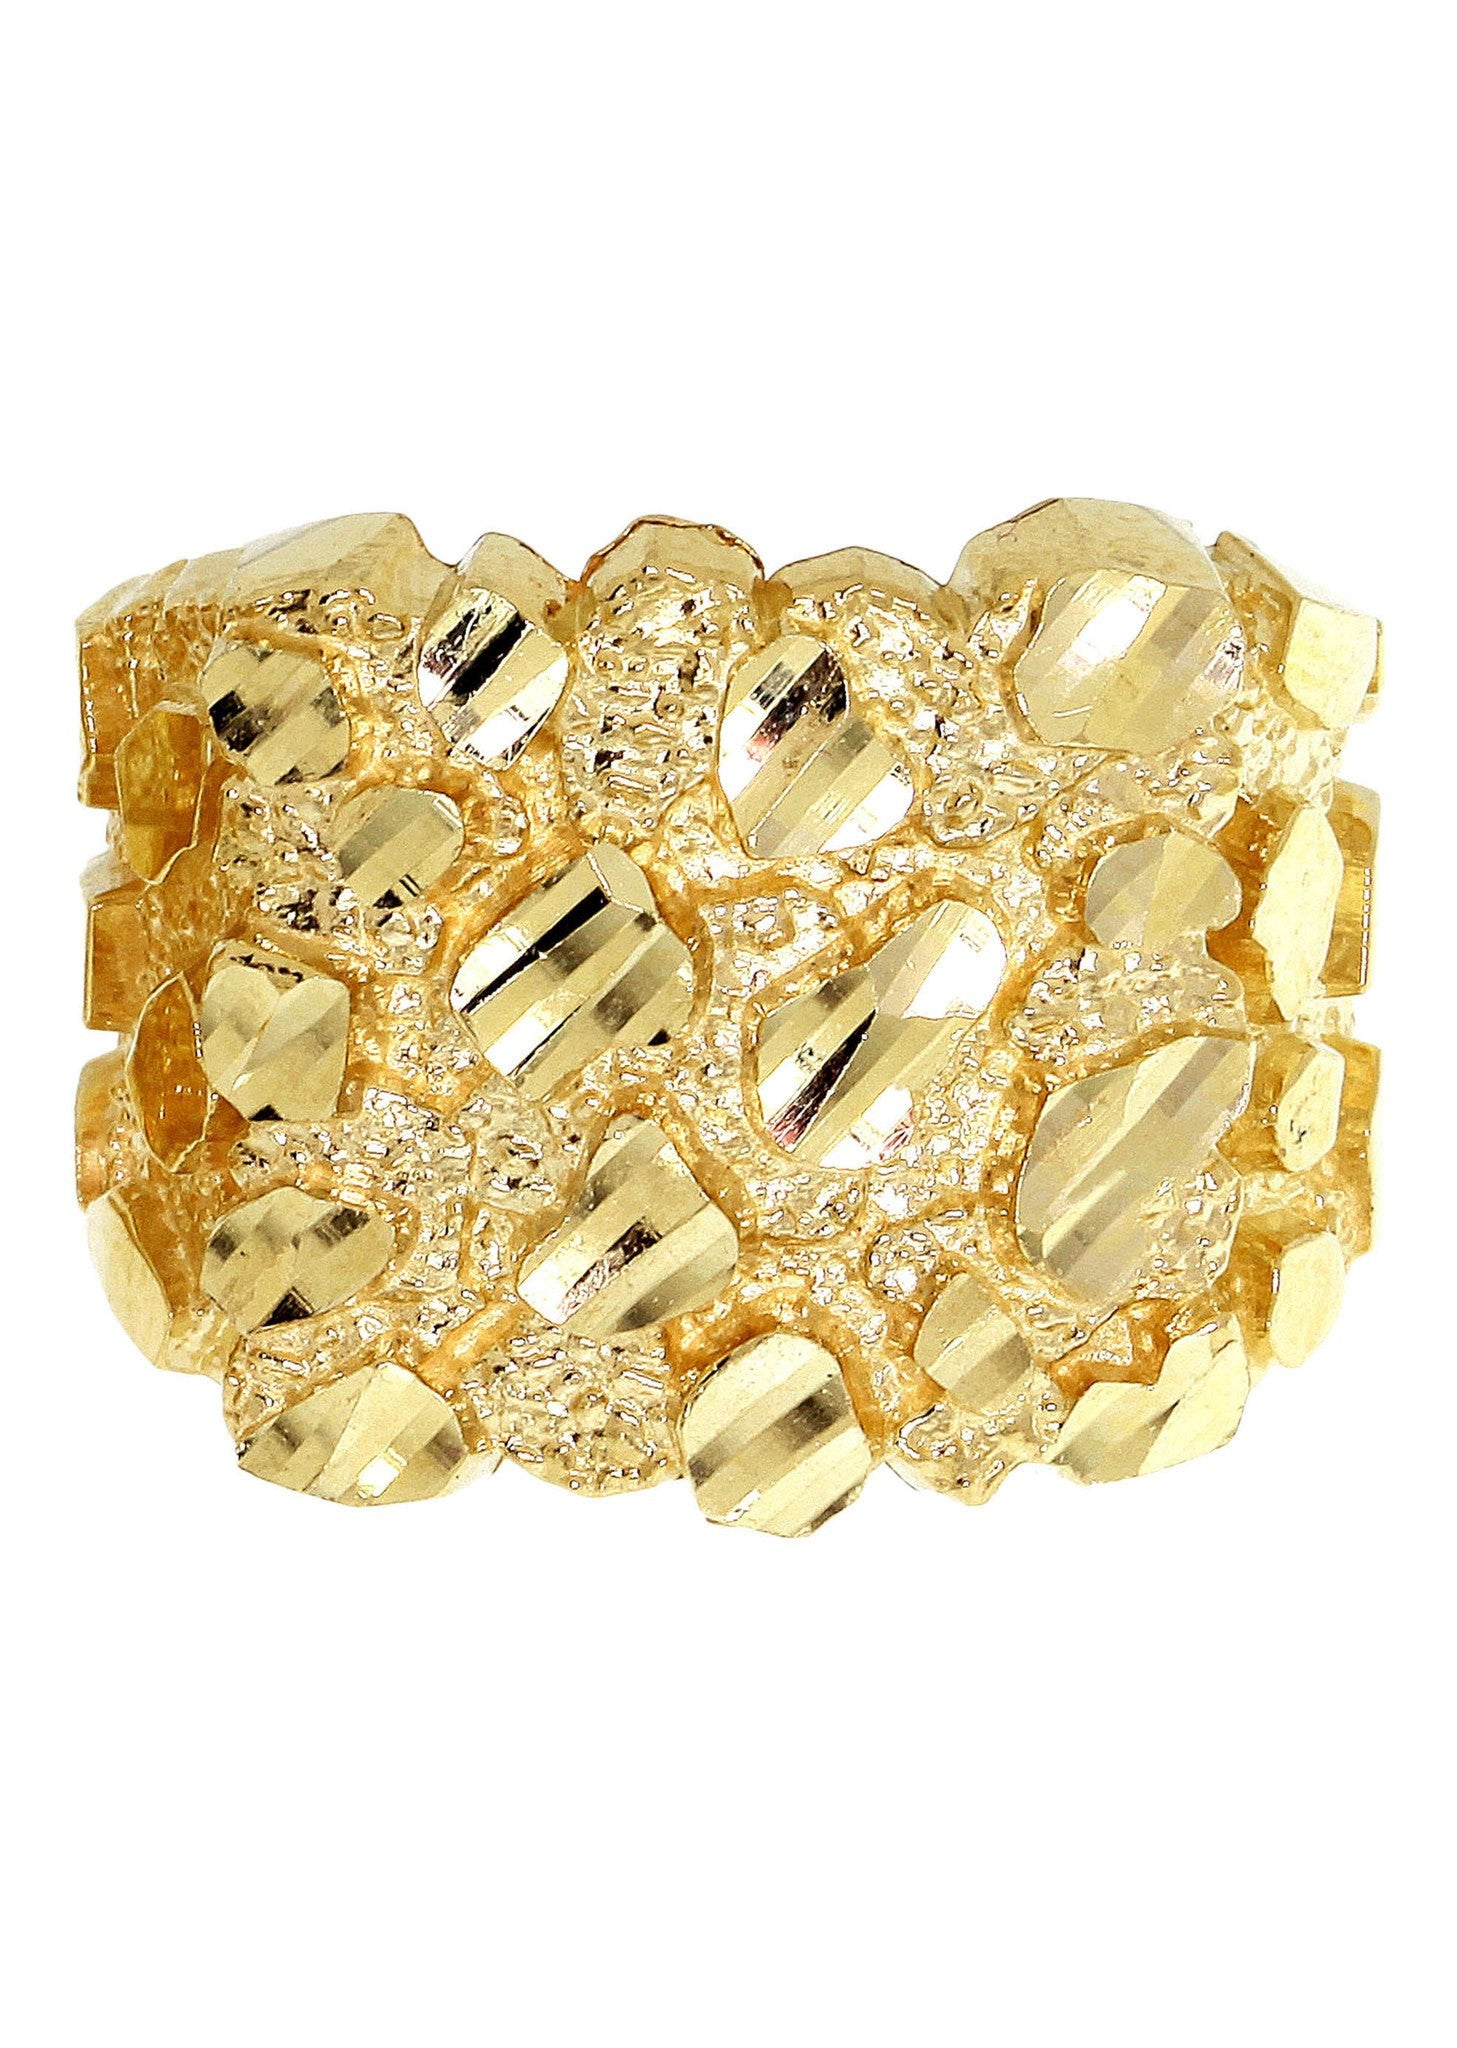 Gold Nugget Ring- Mens Ring 10K Gold  69 Grams  Frostnyc-6677